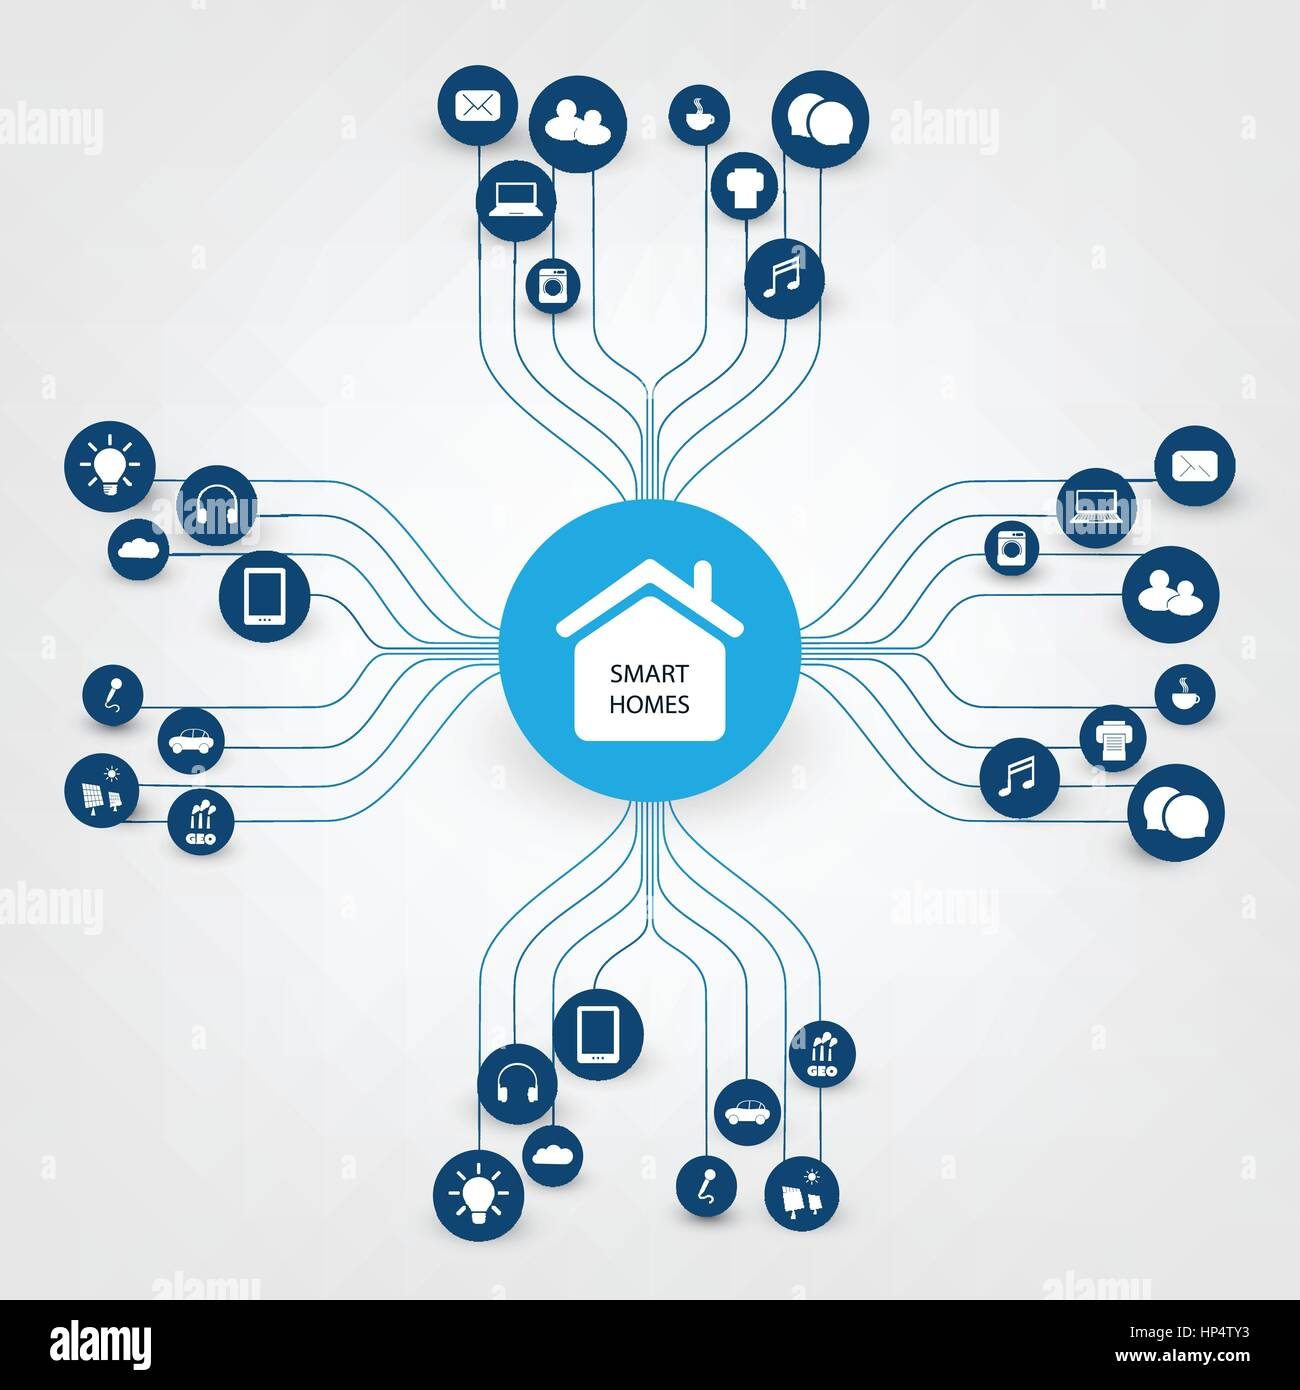 Smart Home Design Concept with Icons - Digital Network Connections ...